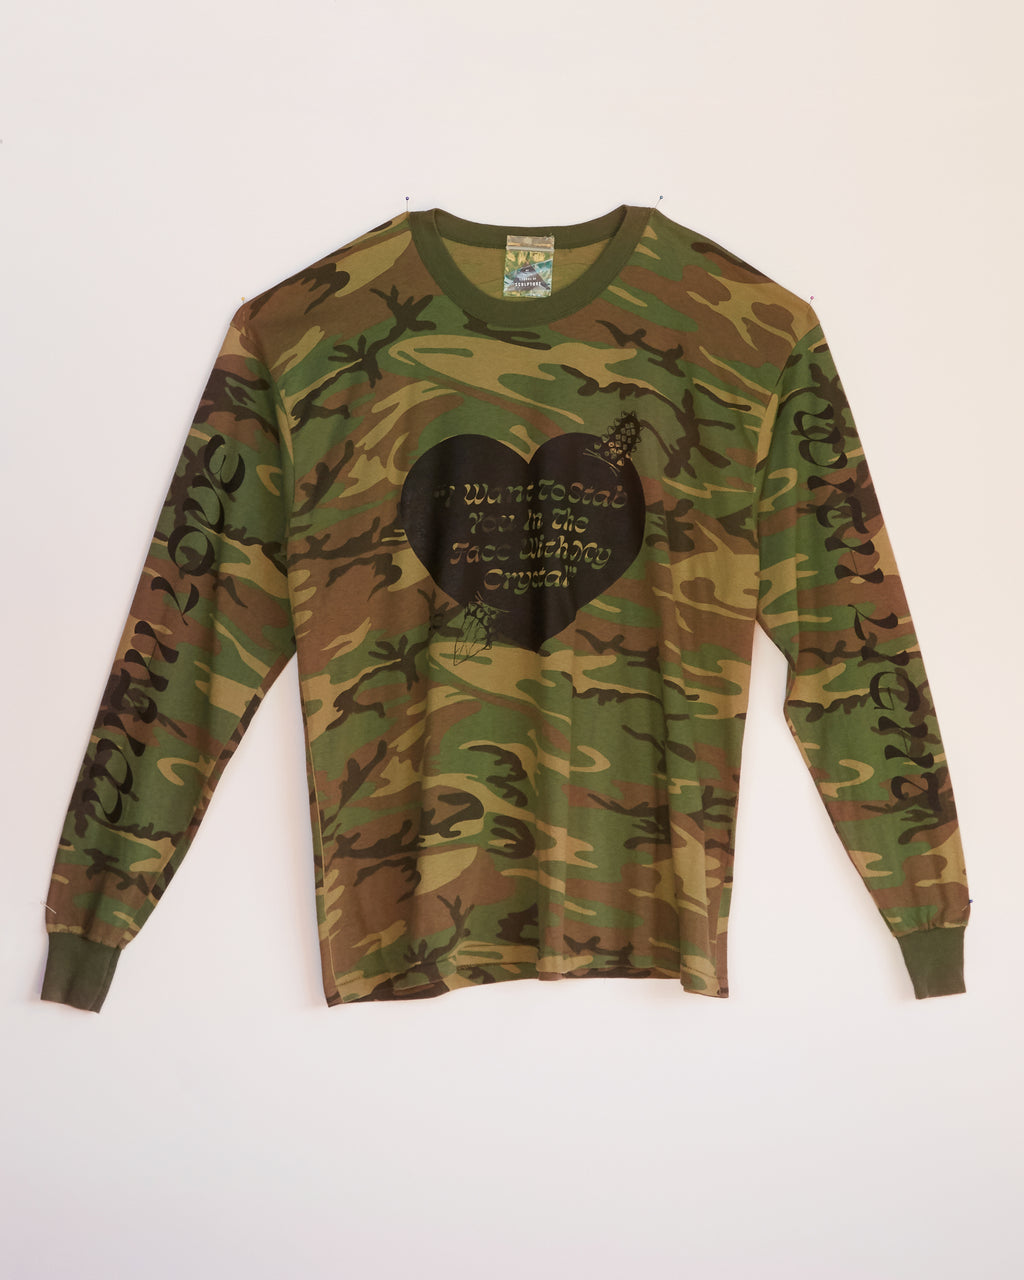 IWTSYITFWMC CAMO LONG SLEEVE - XL